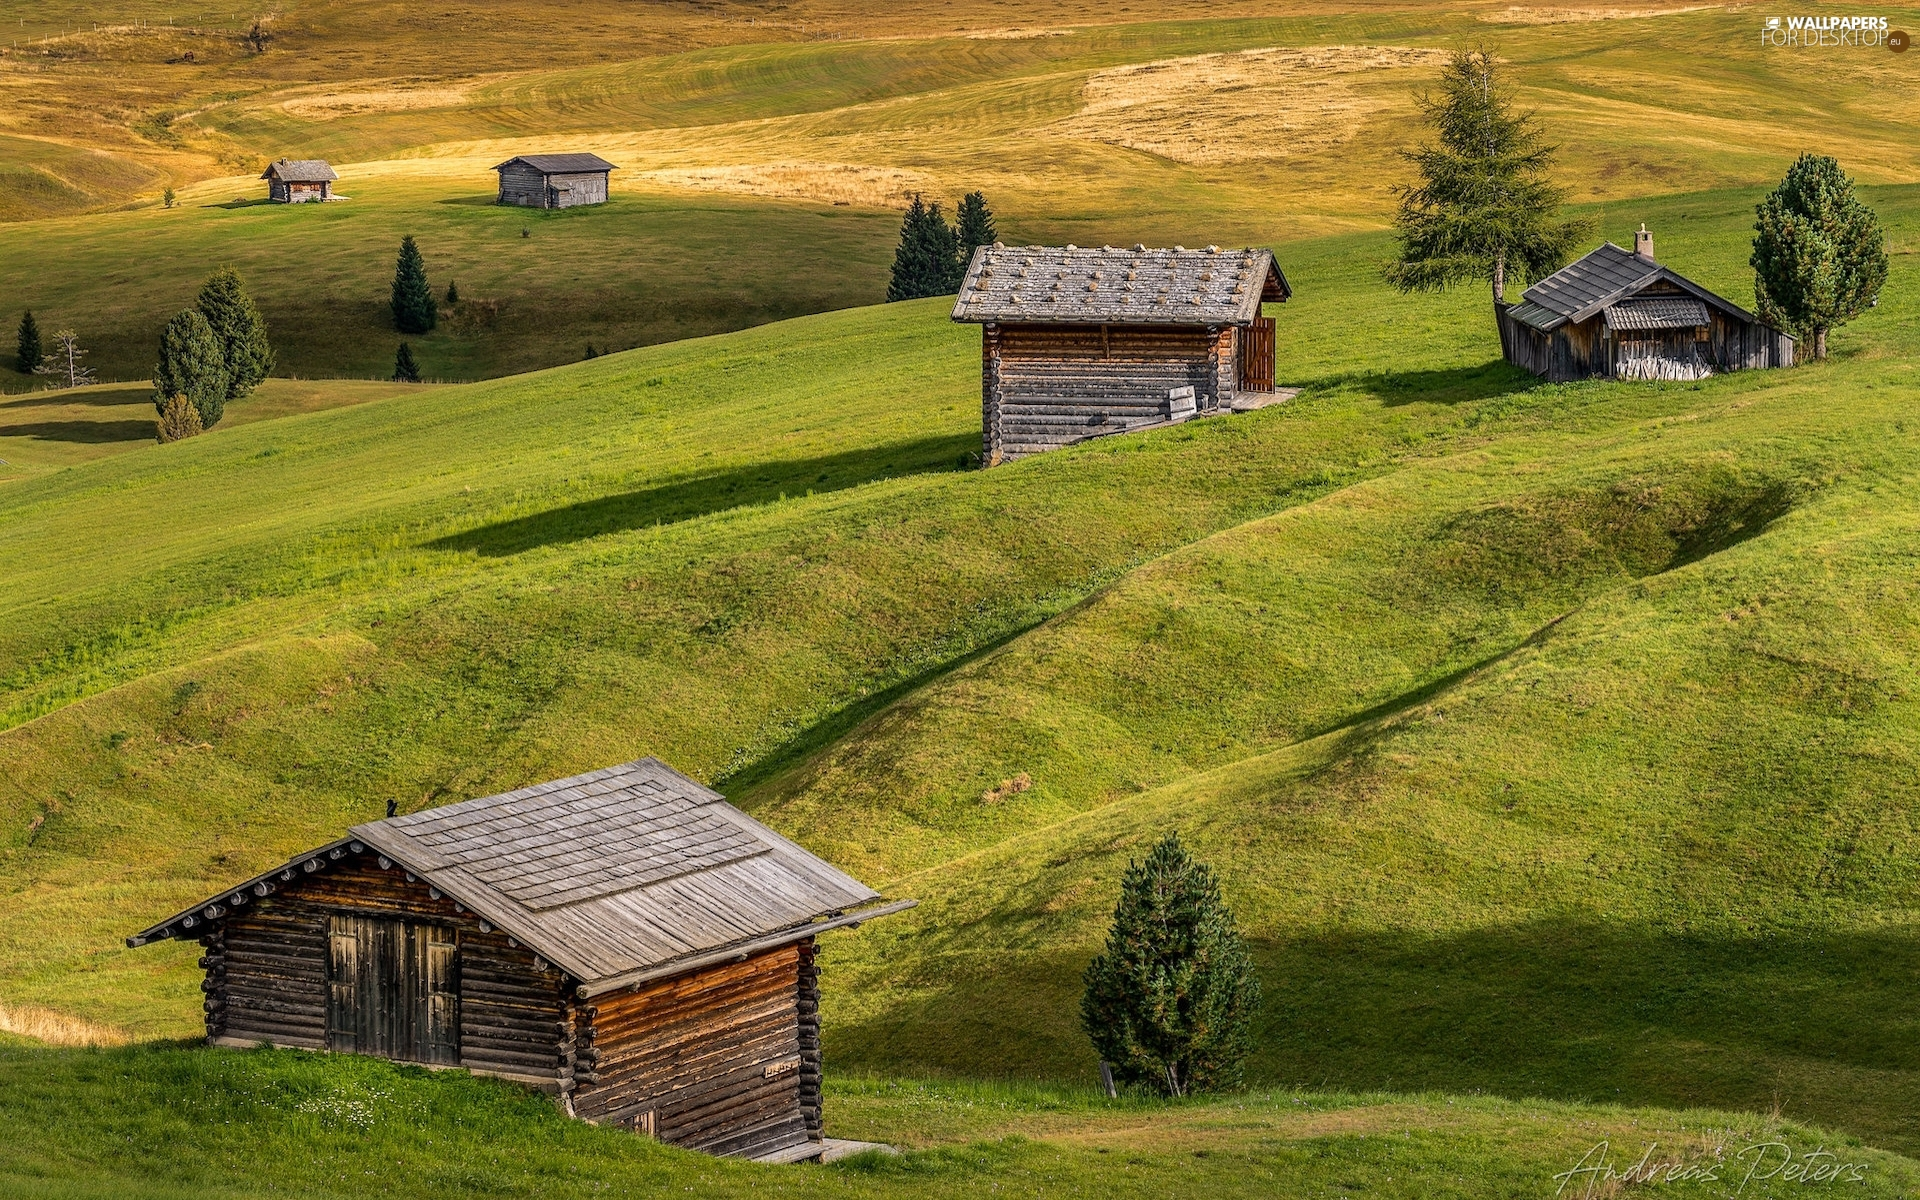 Val Gardena Valley, Seiser Alm Meadow, The Hills, medows, viewes, Italy, Houses, trees, wood